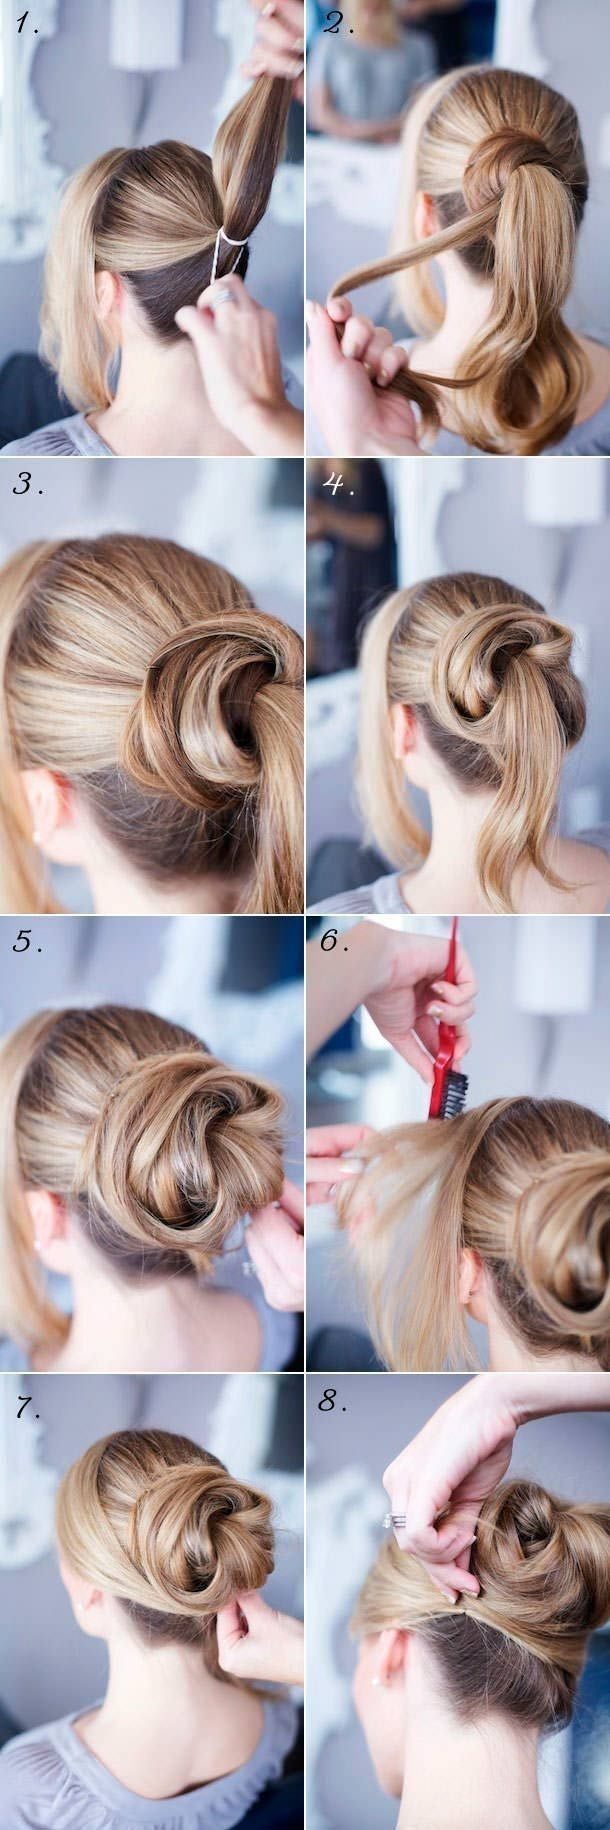 Trendy Low Bun Hairstyle